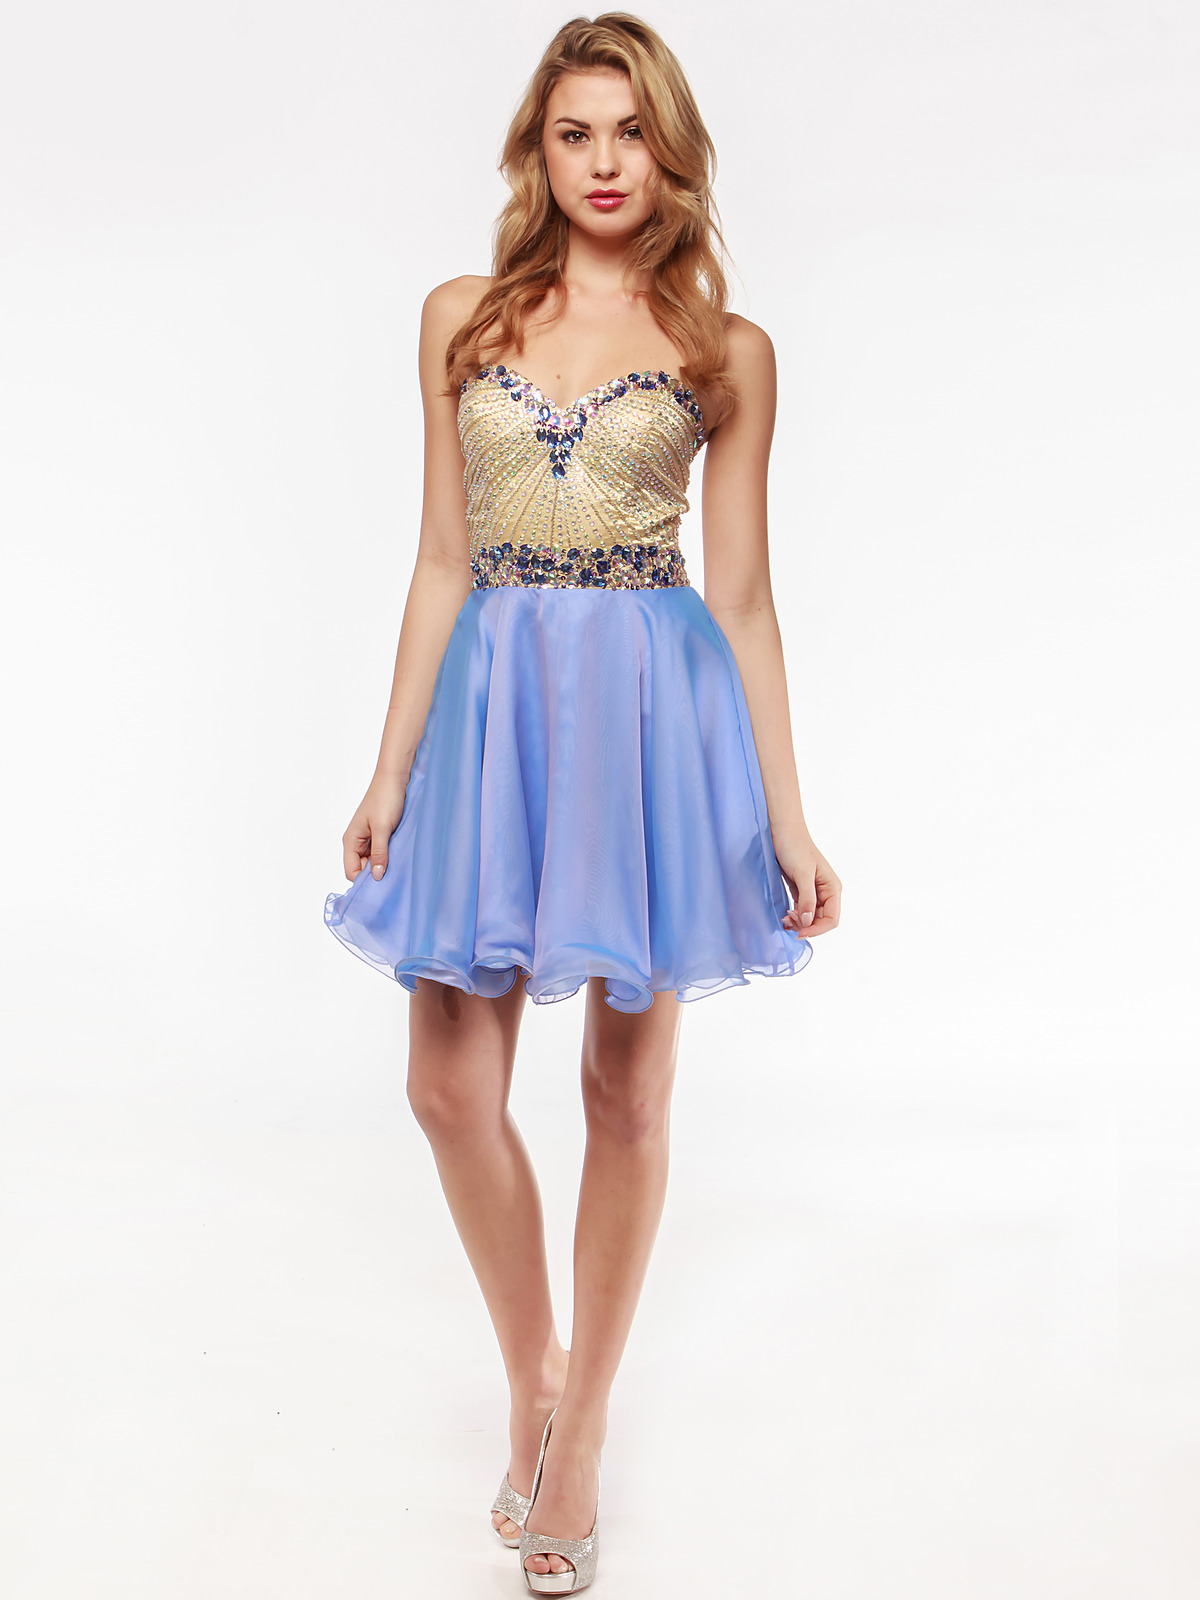 Strapless Sweetheart Embellished Cocktail Dress | Sung Boutique L.A.